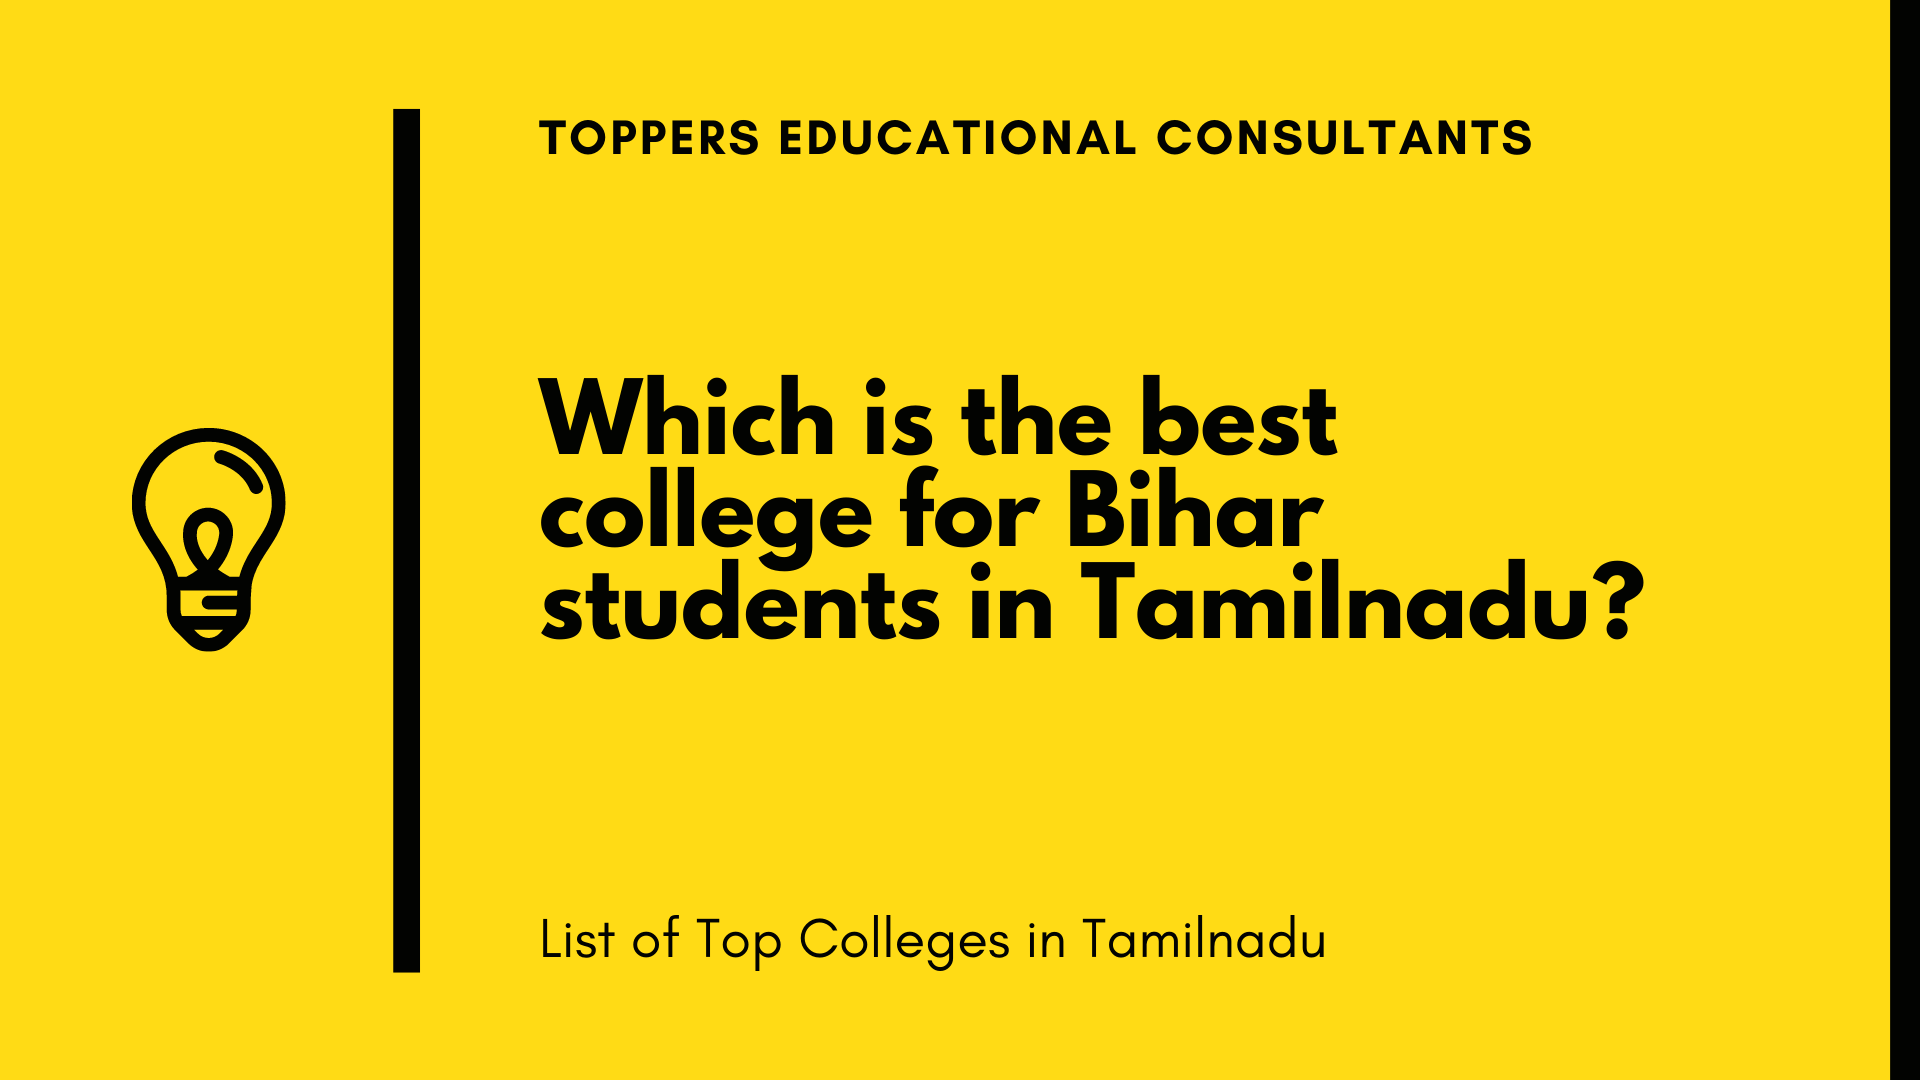 Which is the best college for Bihar students in Tamilnadu?